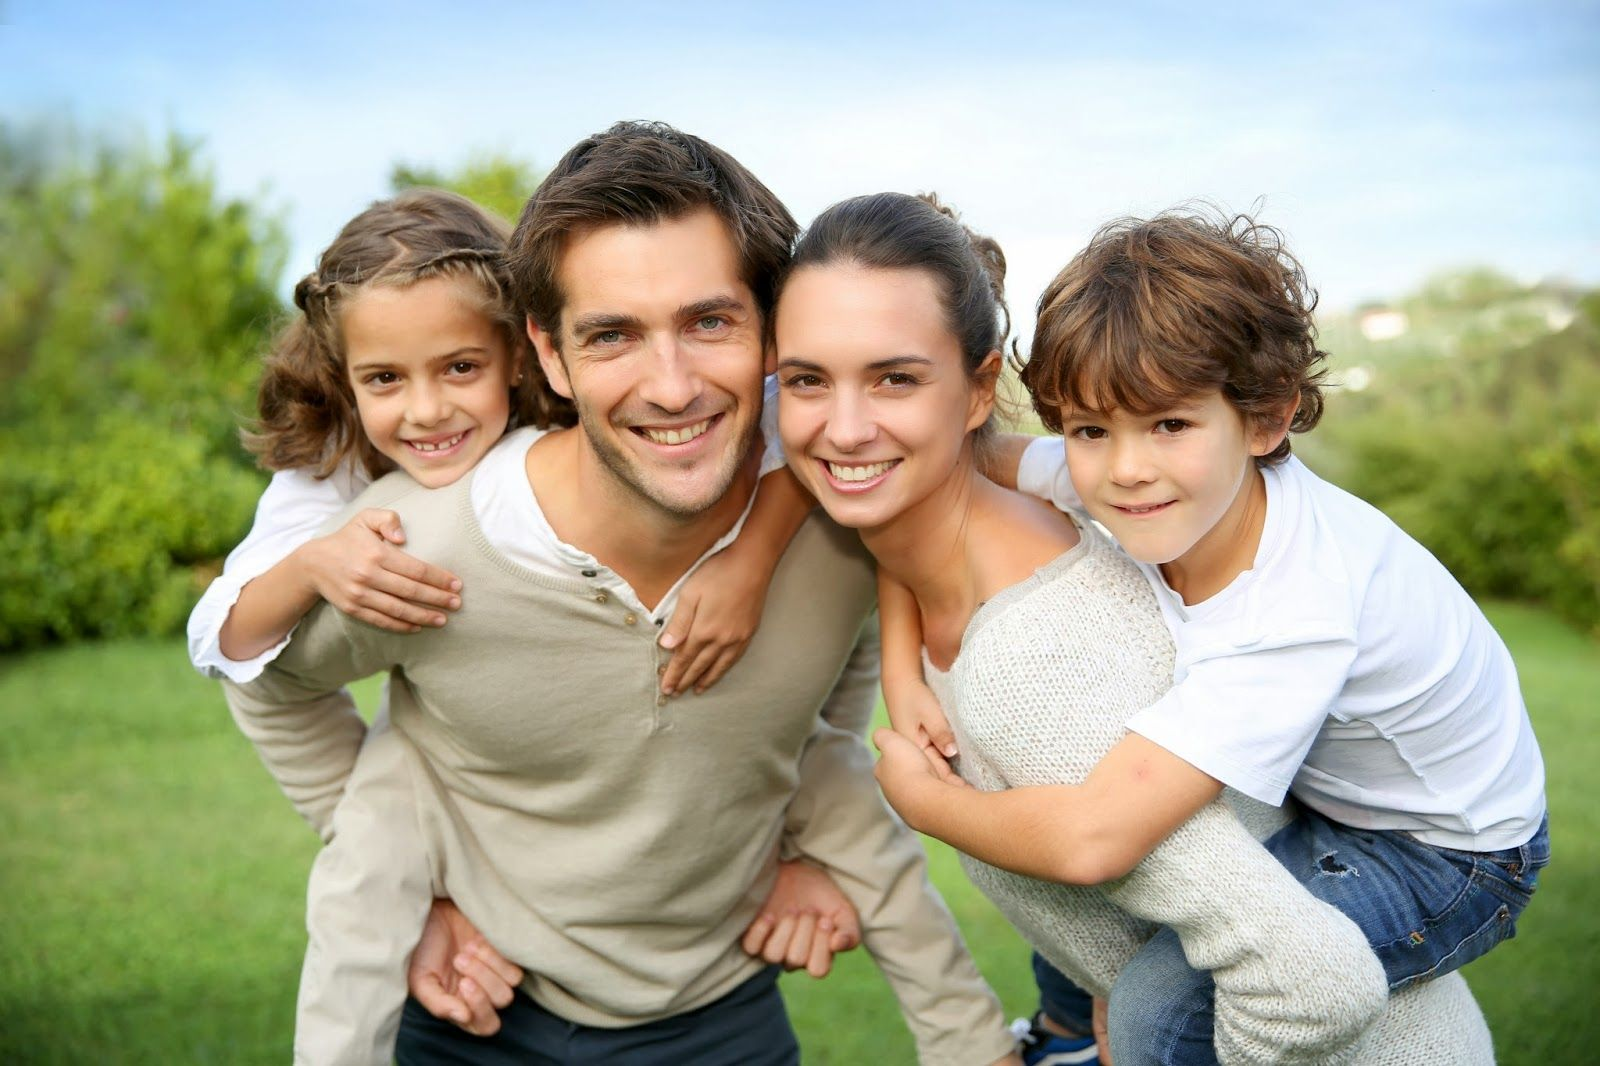 Five Characteristics Of A Happy And Healthy Family